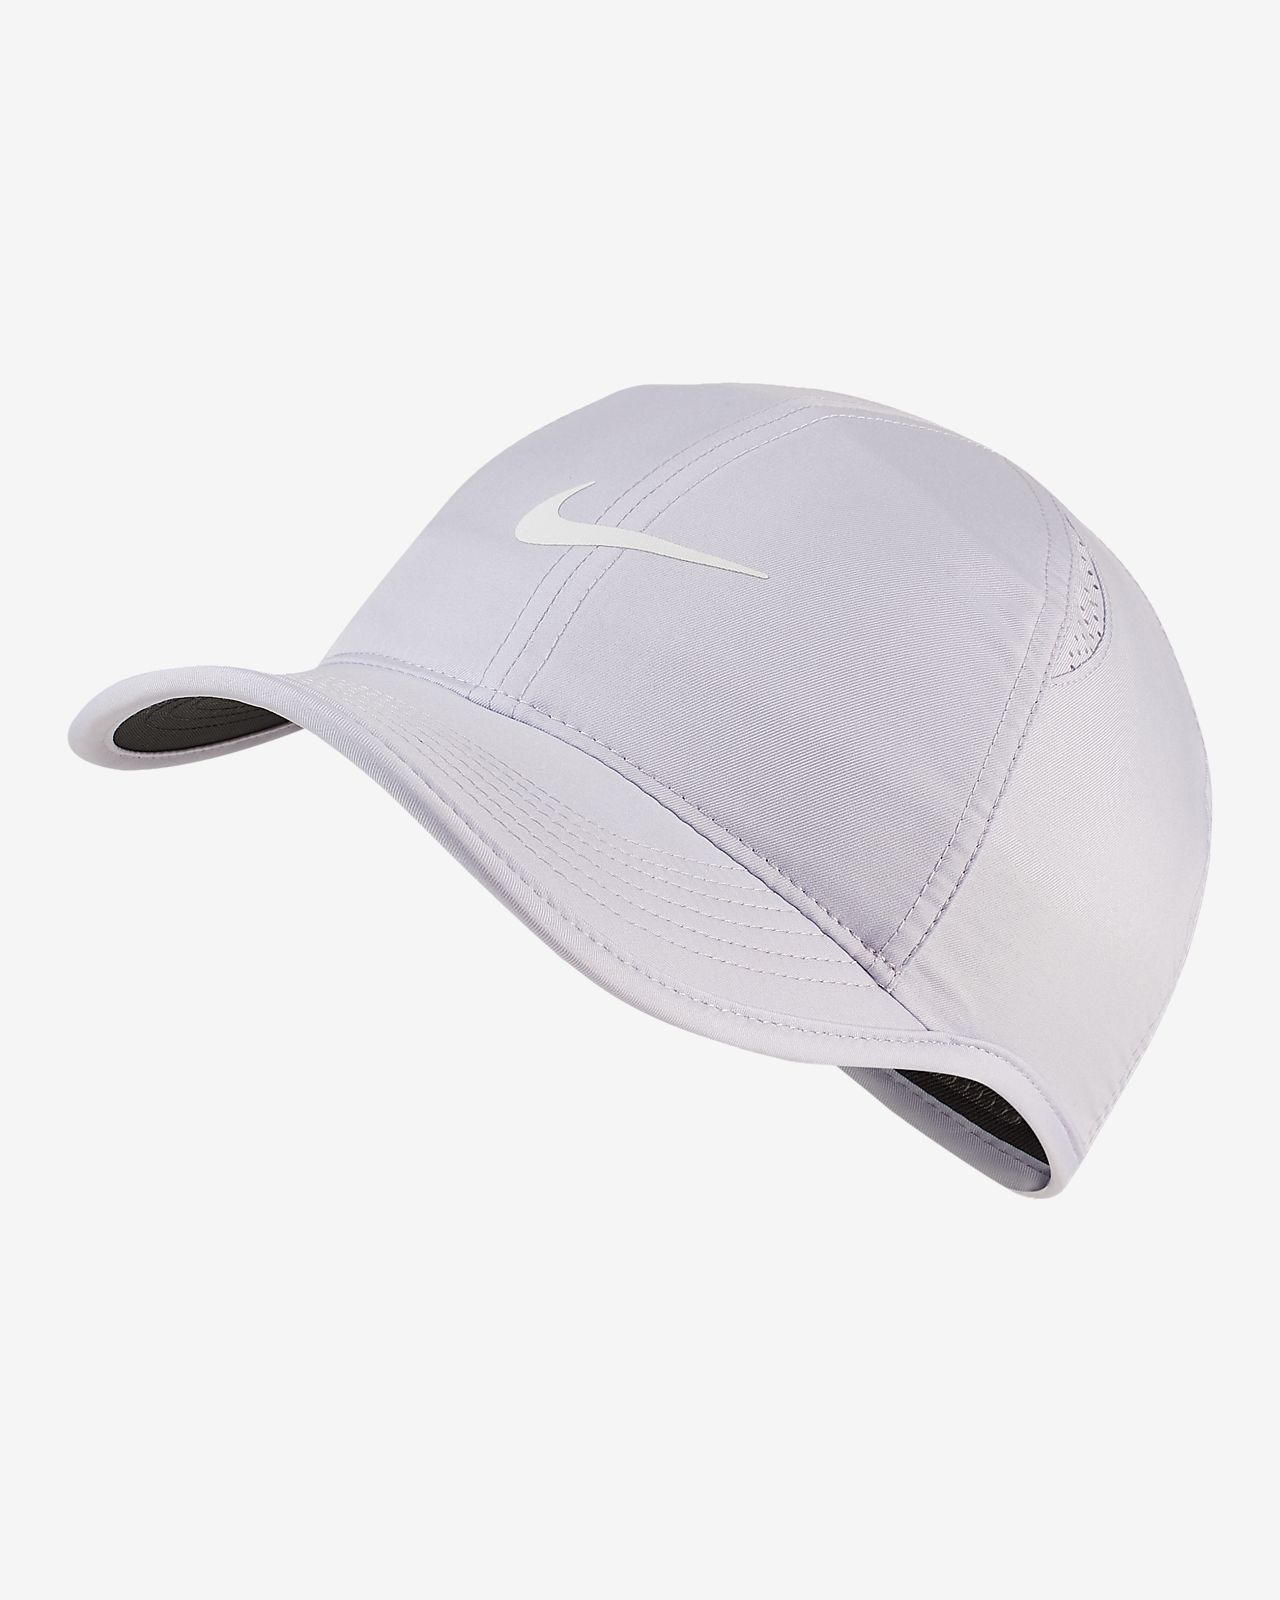 59766dba NikeCourt AeroBill Featherlight Women's Tennis Cap. Nike.com